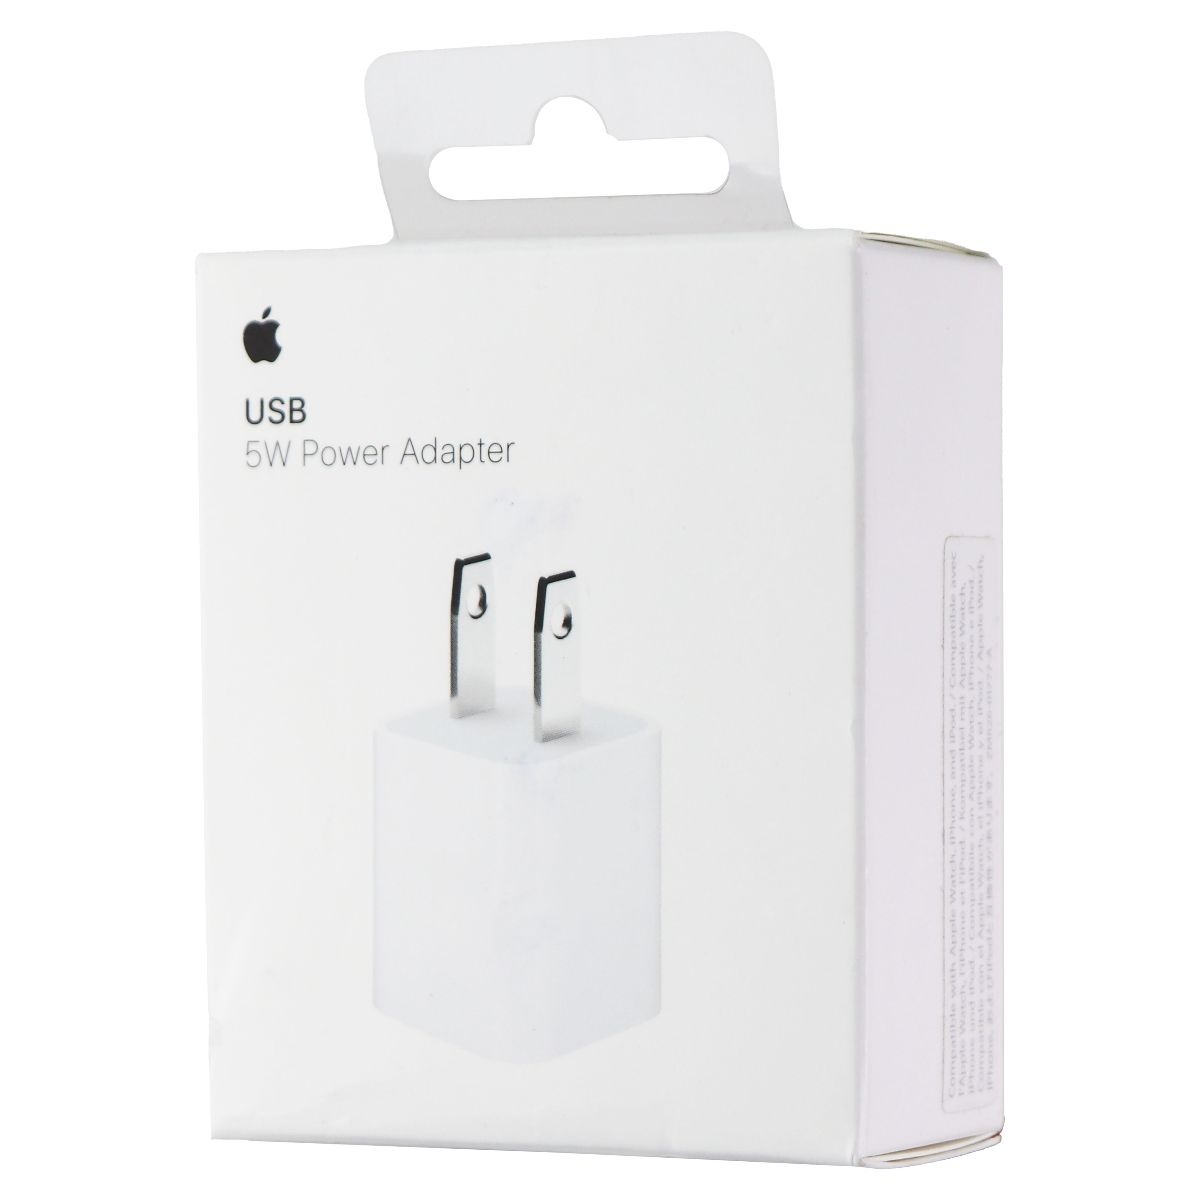 Apple adaptador de corriente USB de 5W $ 7,22 USD